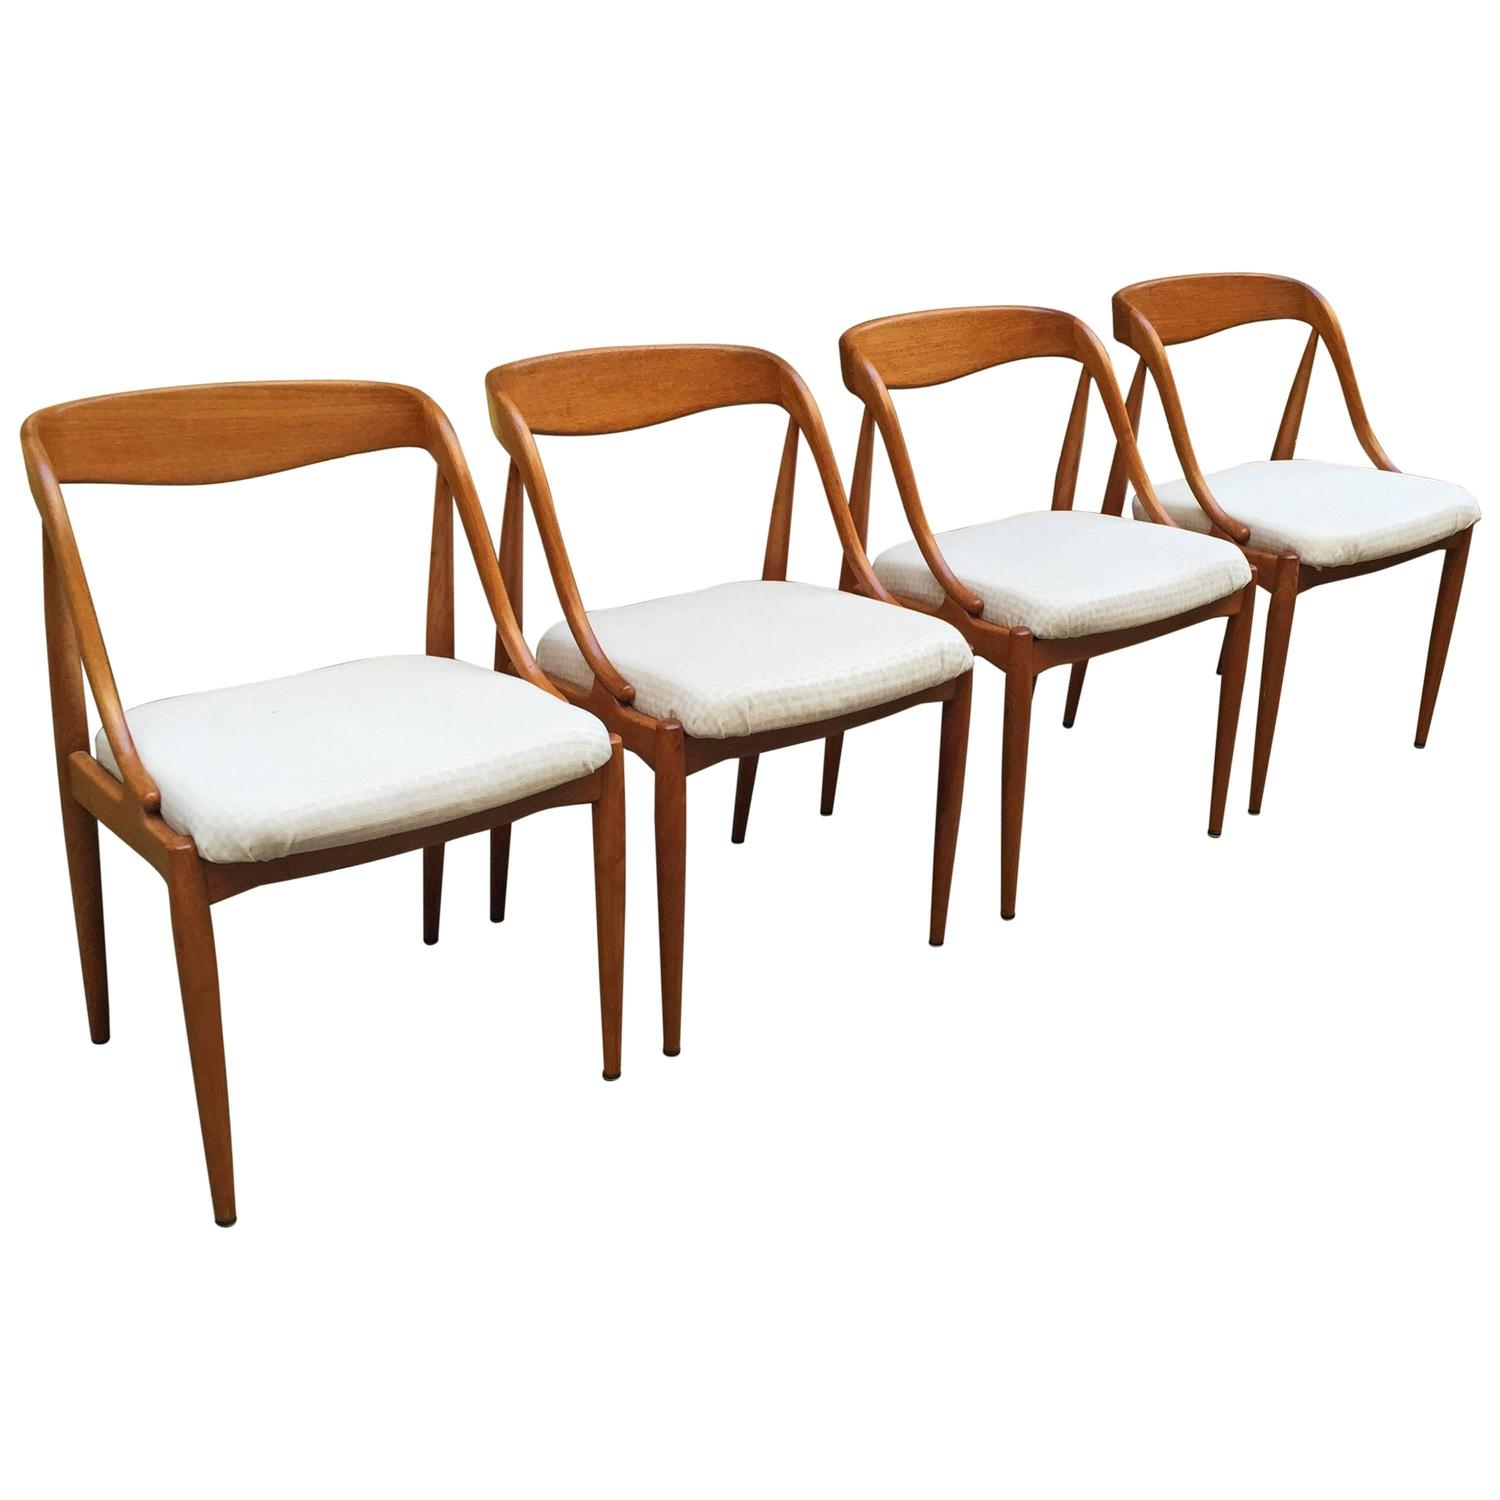 MM Moreddi Furniture Chairs Sofas Tables amp More 9 For Sale at